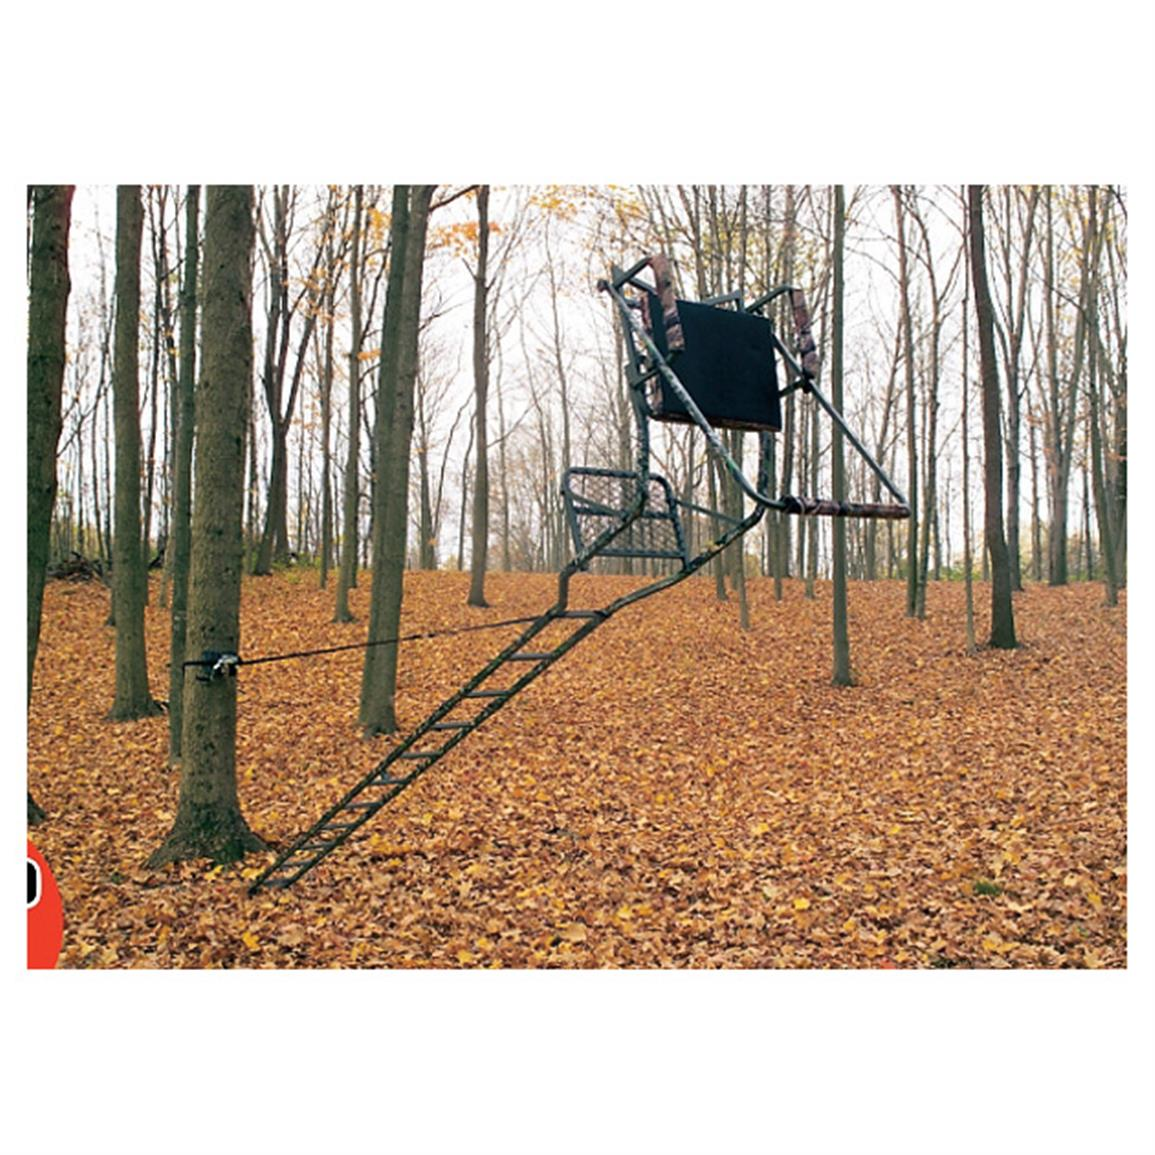 Includes a pair of ground swivel pegs, 25 foot winch strap and tree stand tether strap